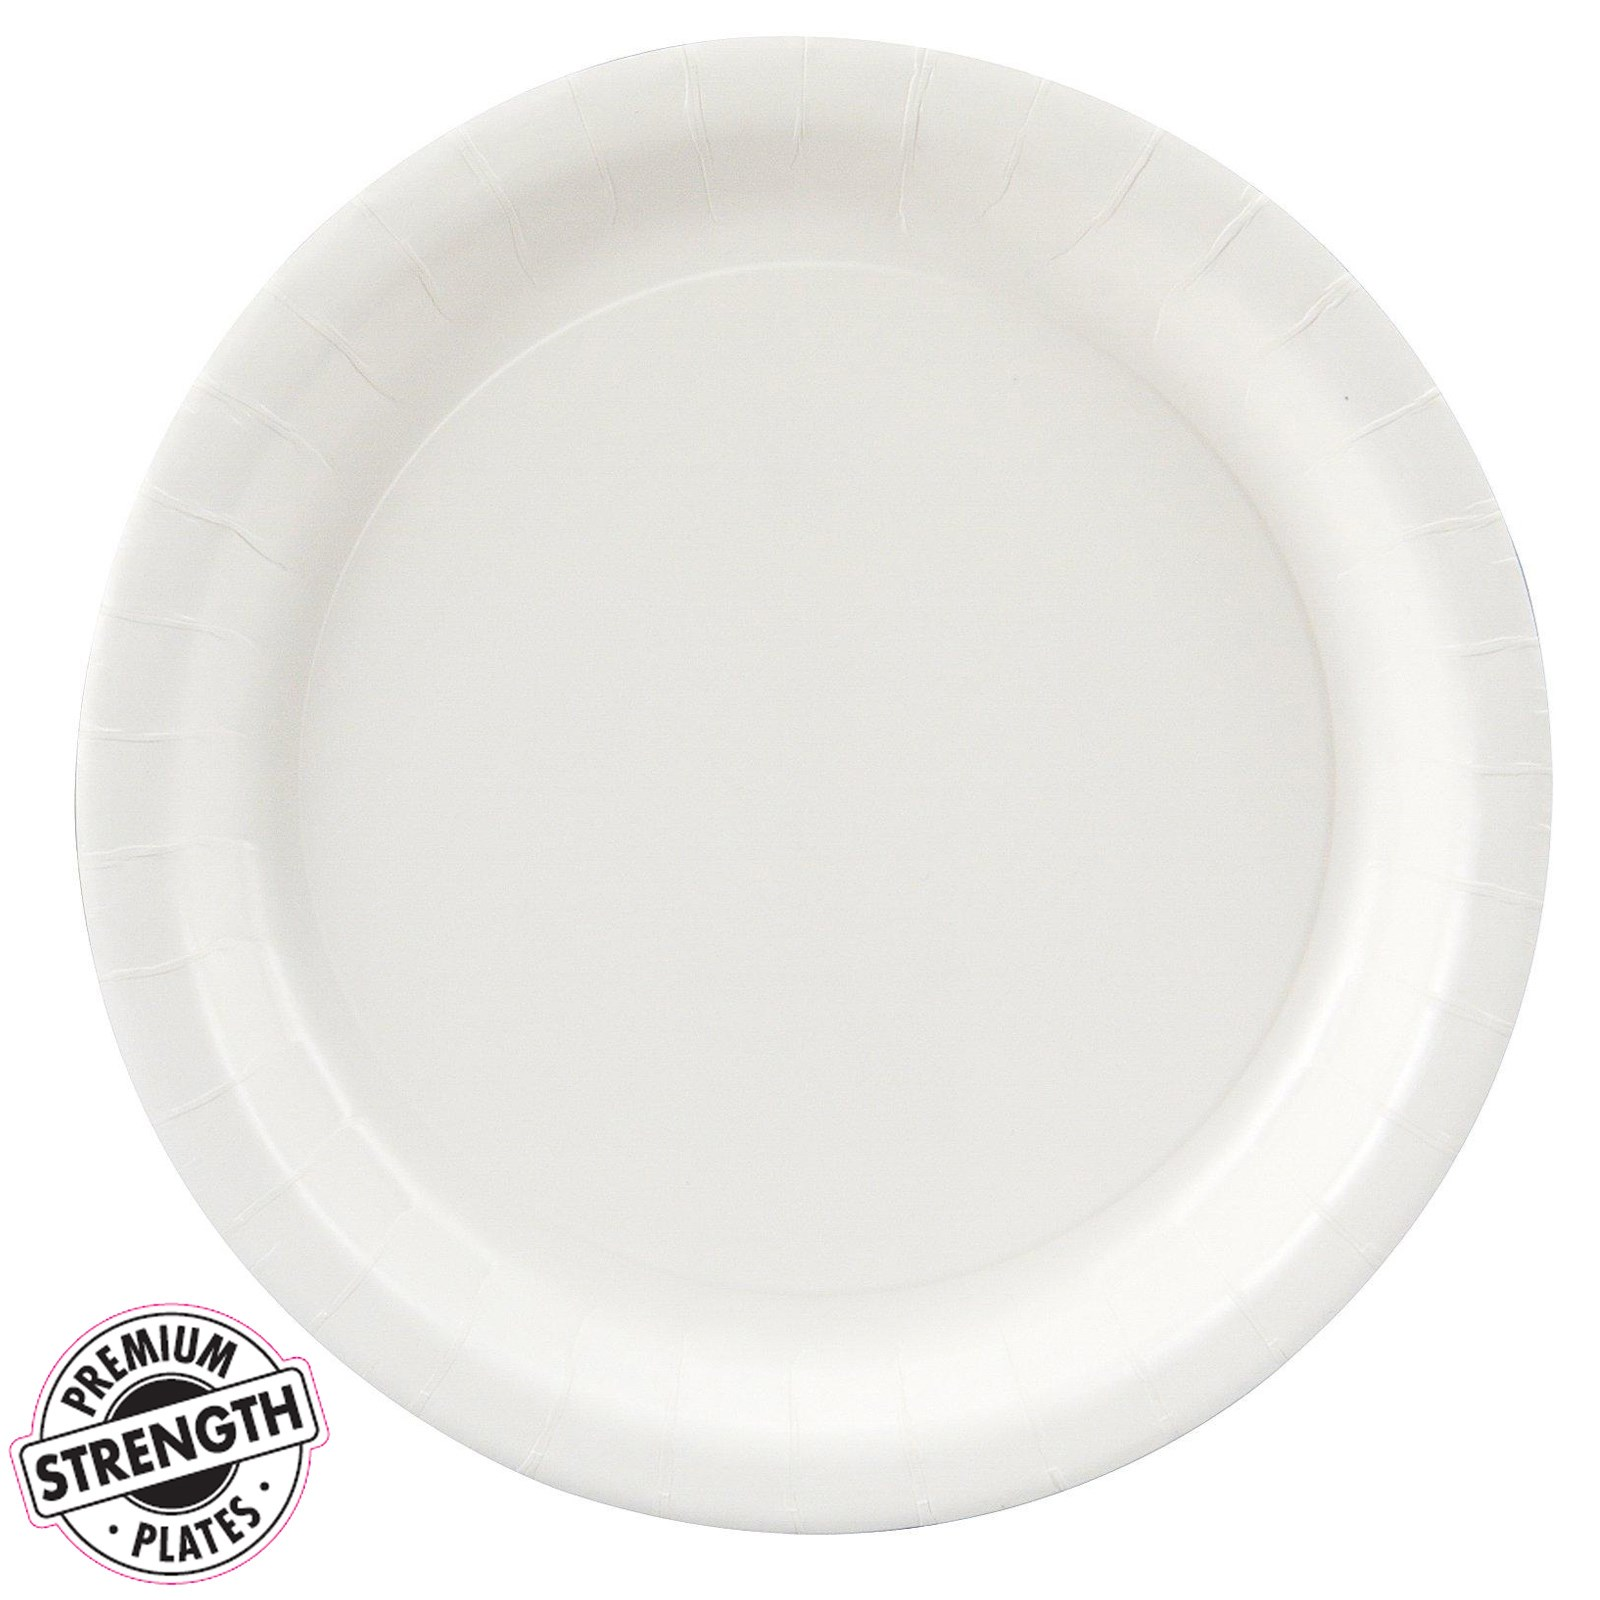 bright white white dinner plates 24 count. Black Bedroom Furniture Sets. Home Design Ideas